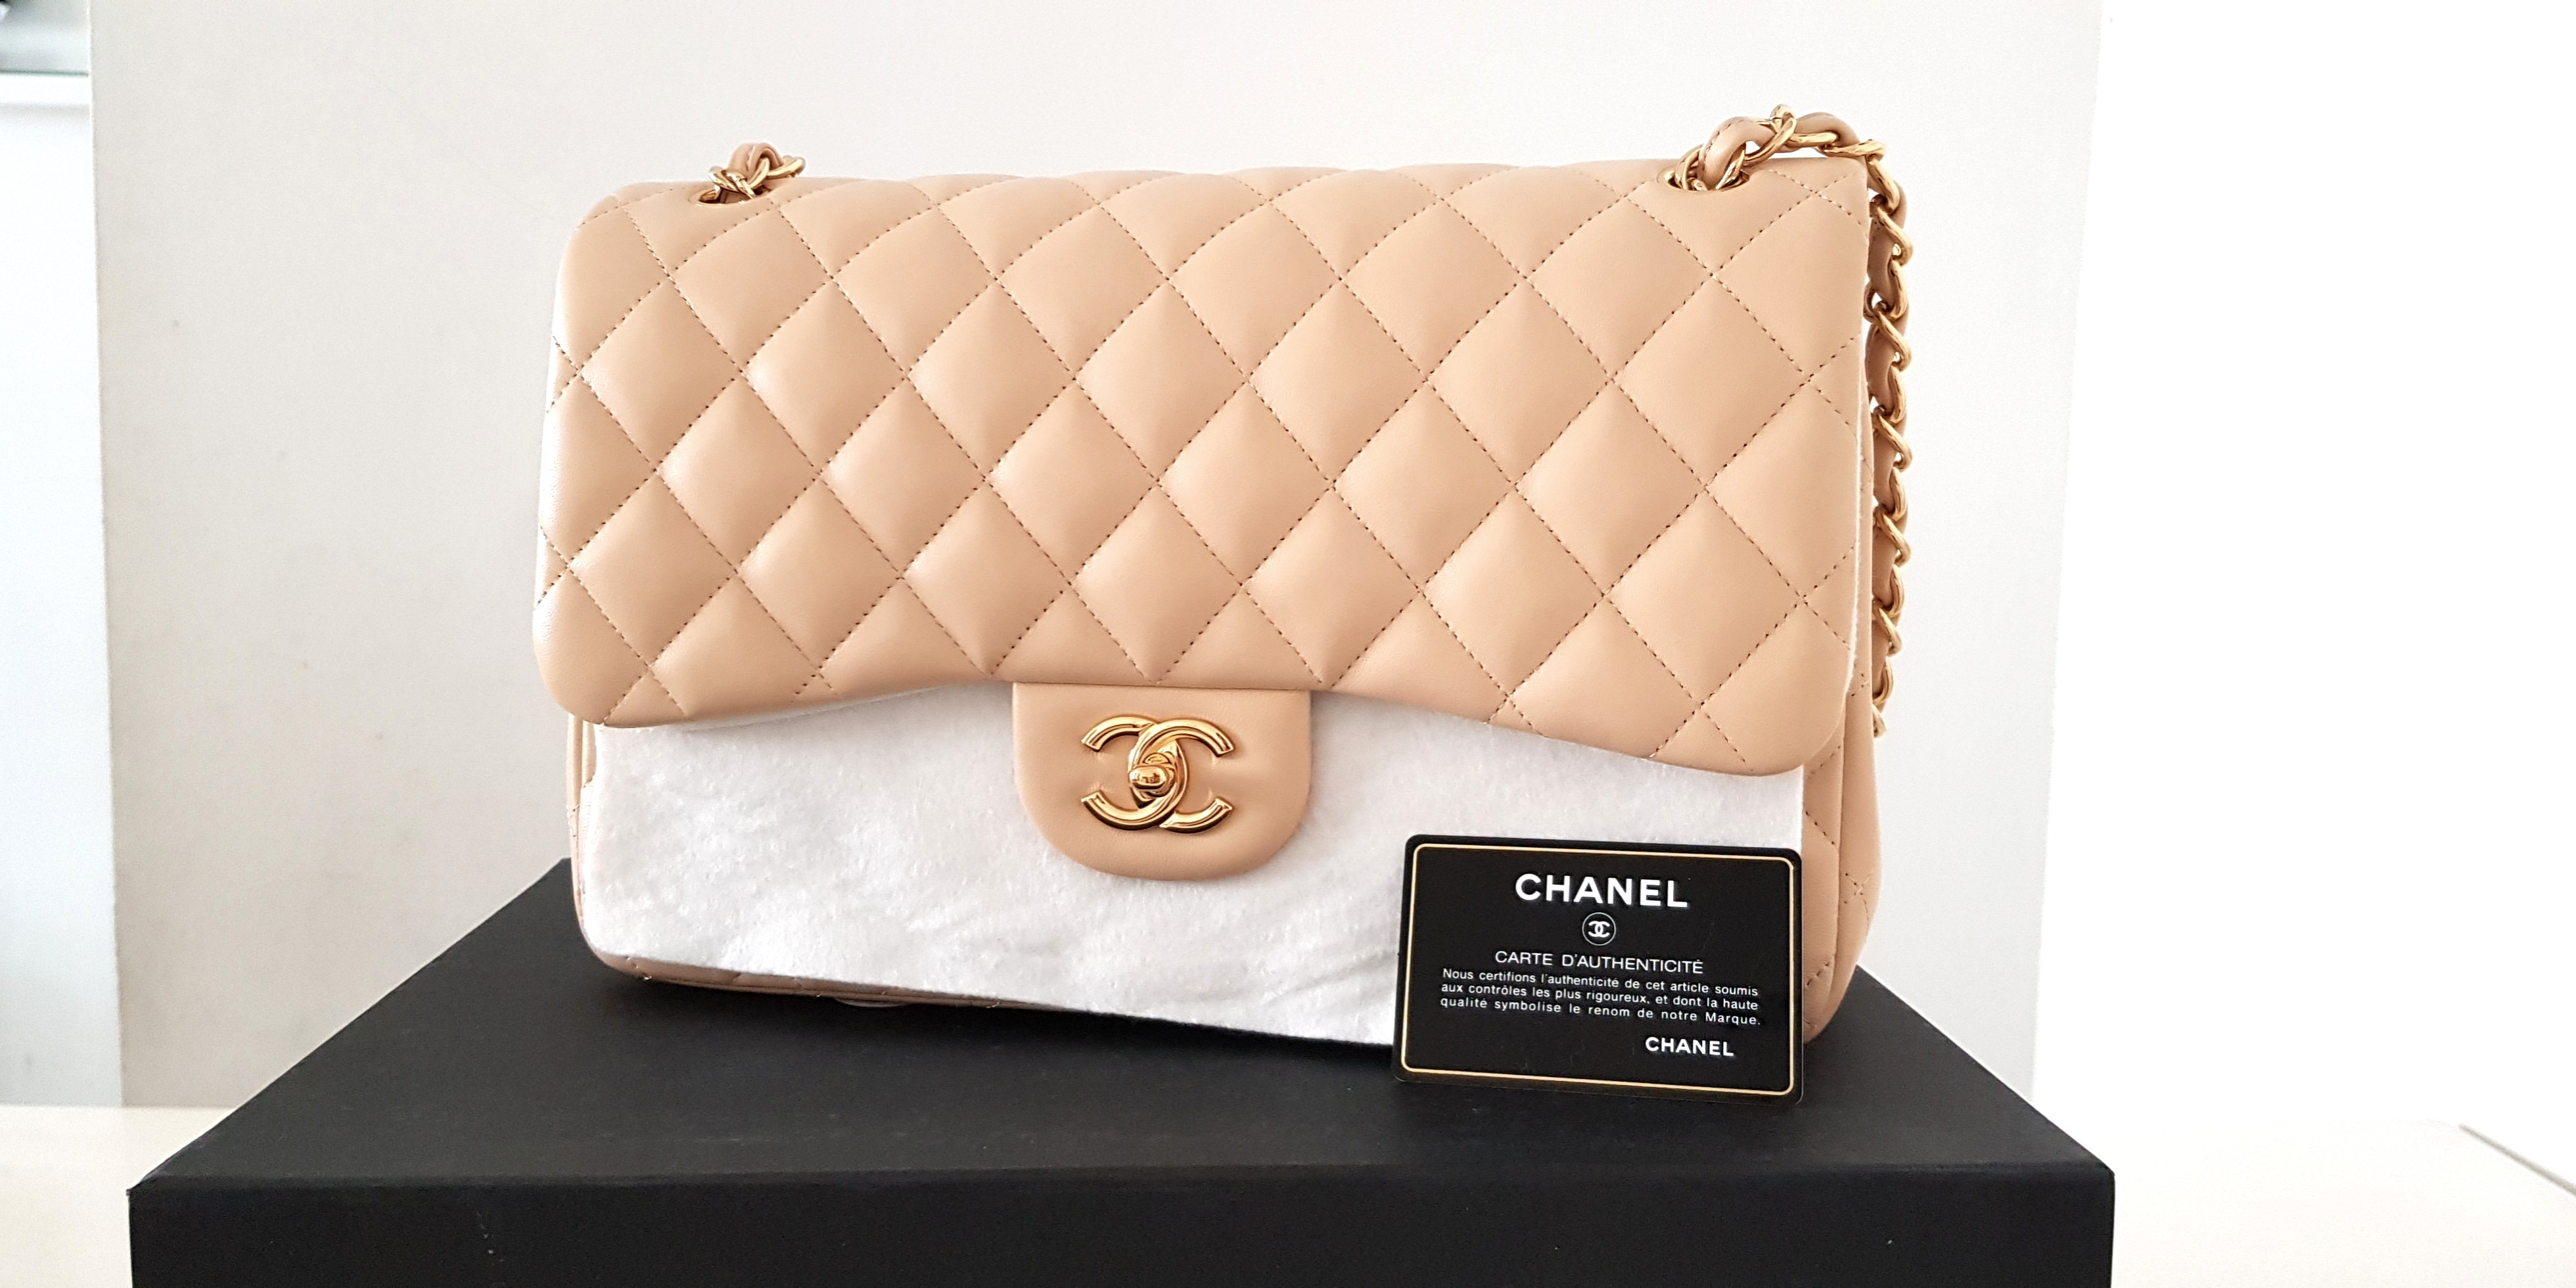 a1aded3e9c1ea2 Chanel classic jumbo, Luxury, Bags & Wallets, Handbags on Carousell